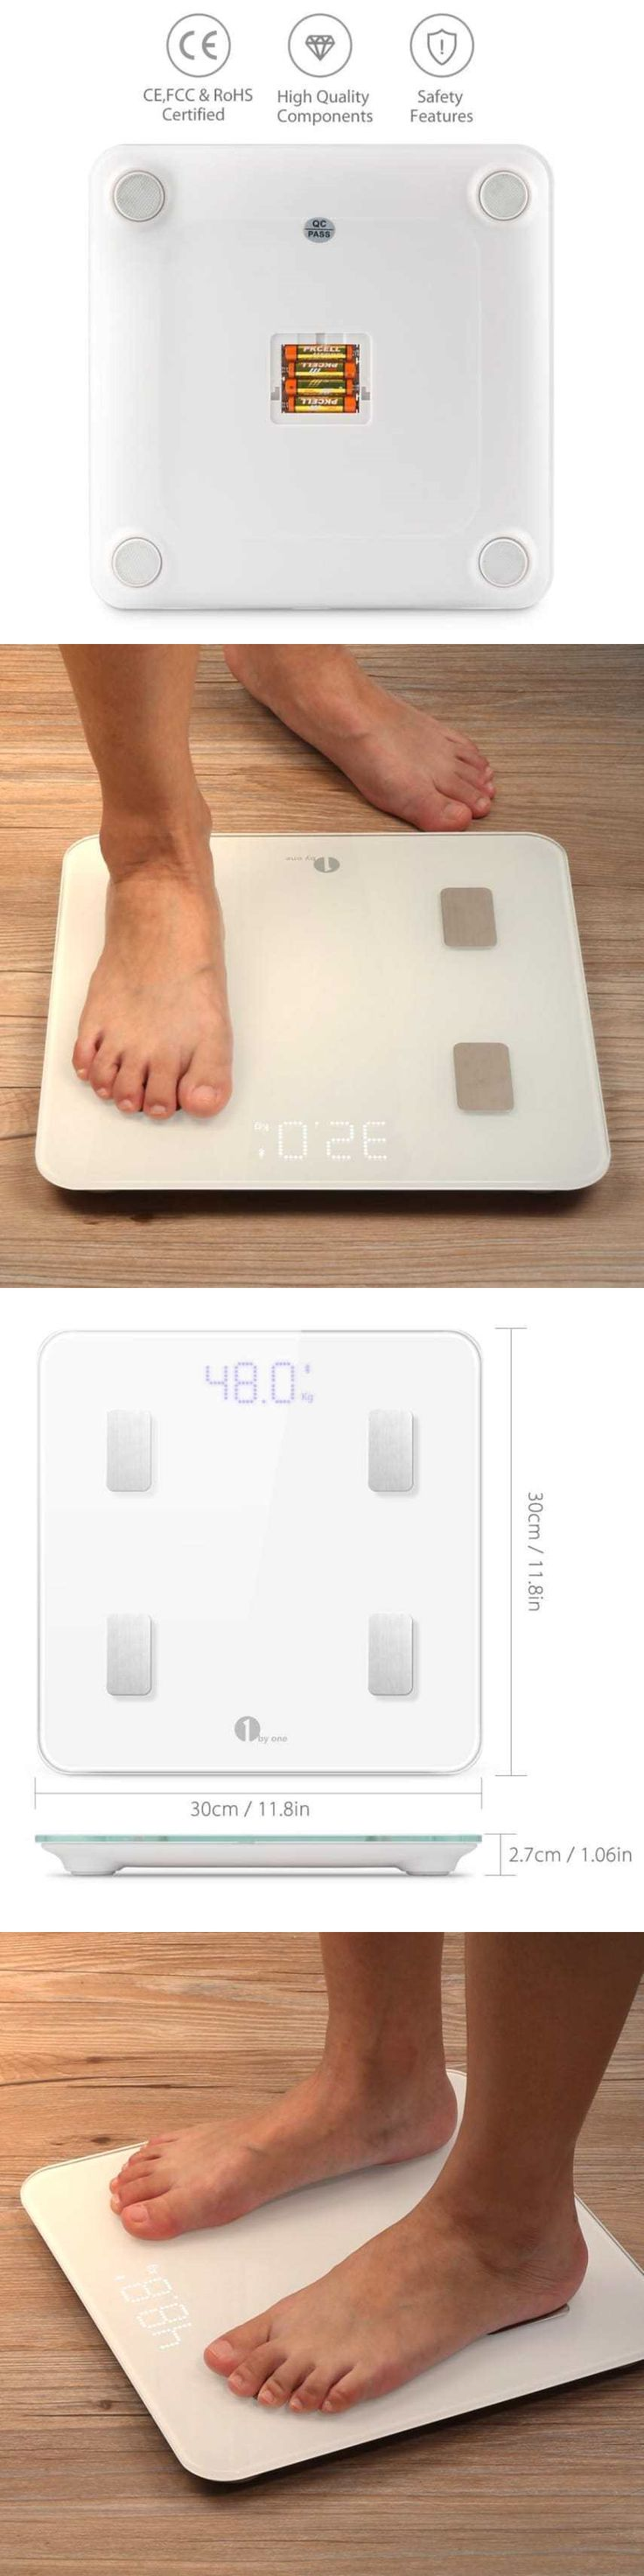 Scales: 1Byone Digital Smart Scale Body Scale Bathroom Scale Wireless Body Fat Scale Wit BUY IT NOW ONLY: $44.64